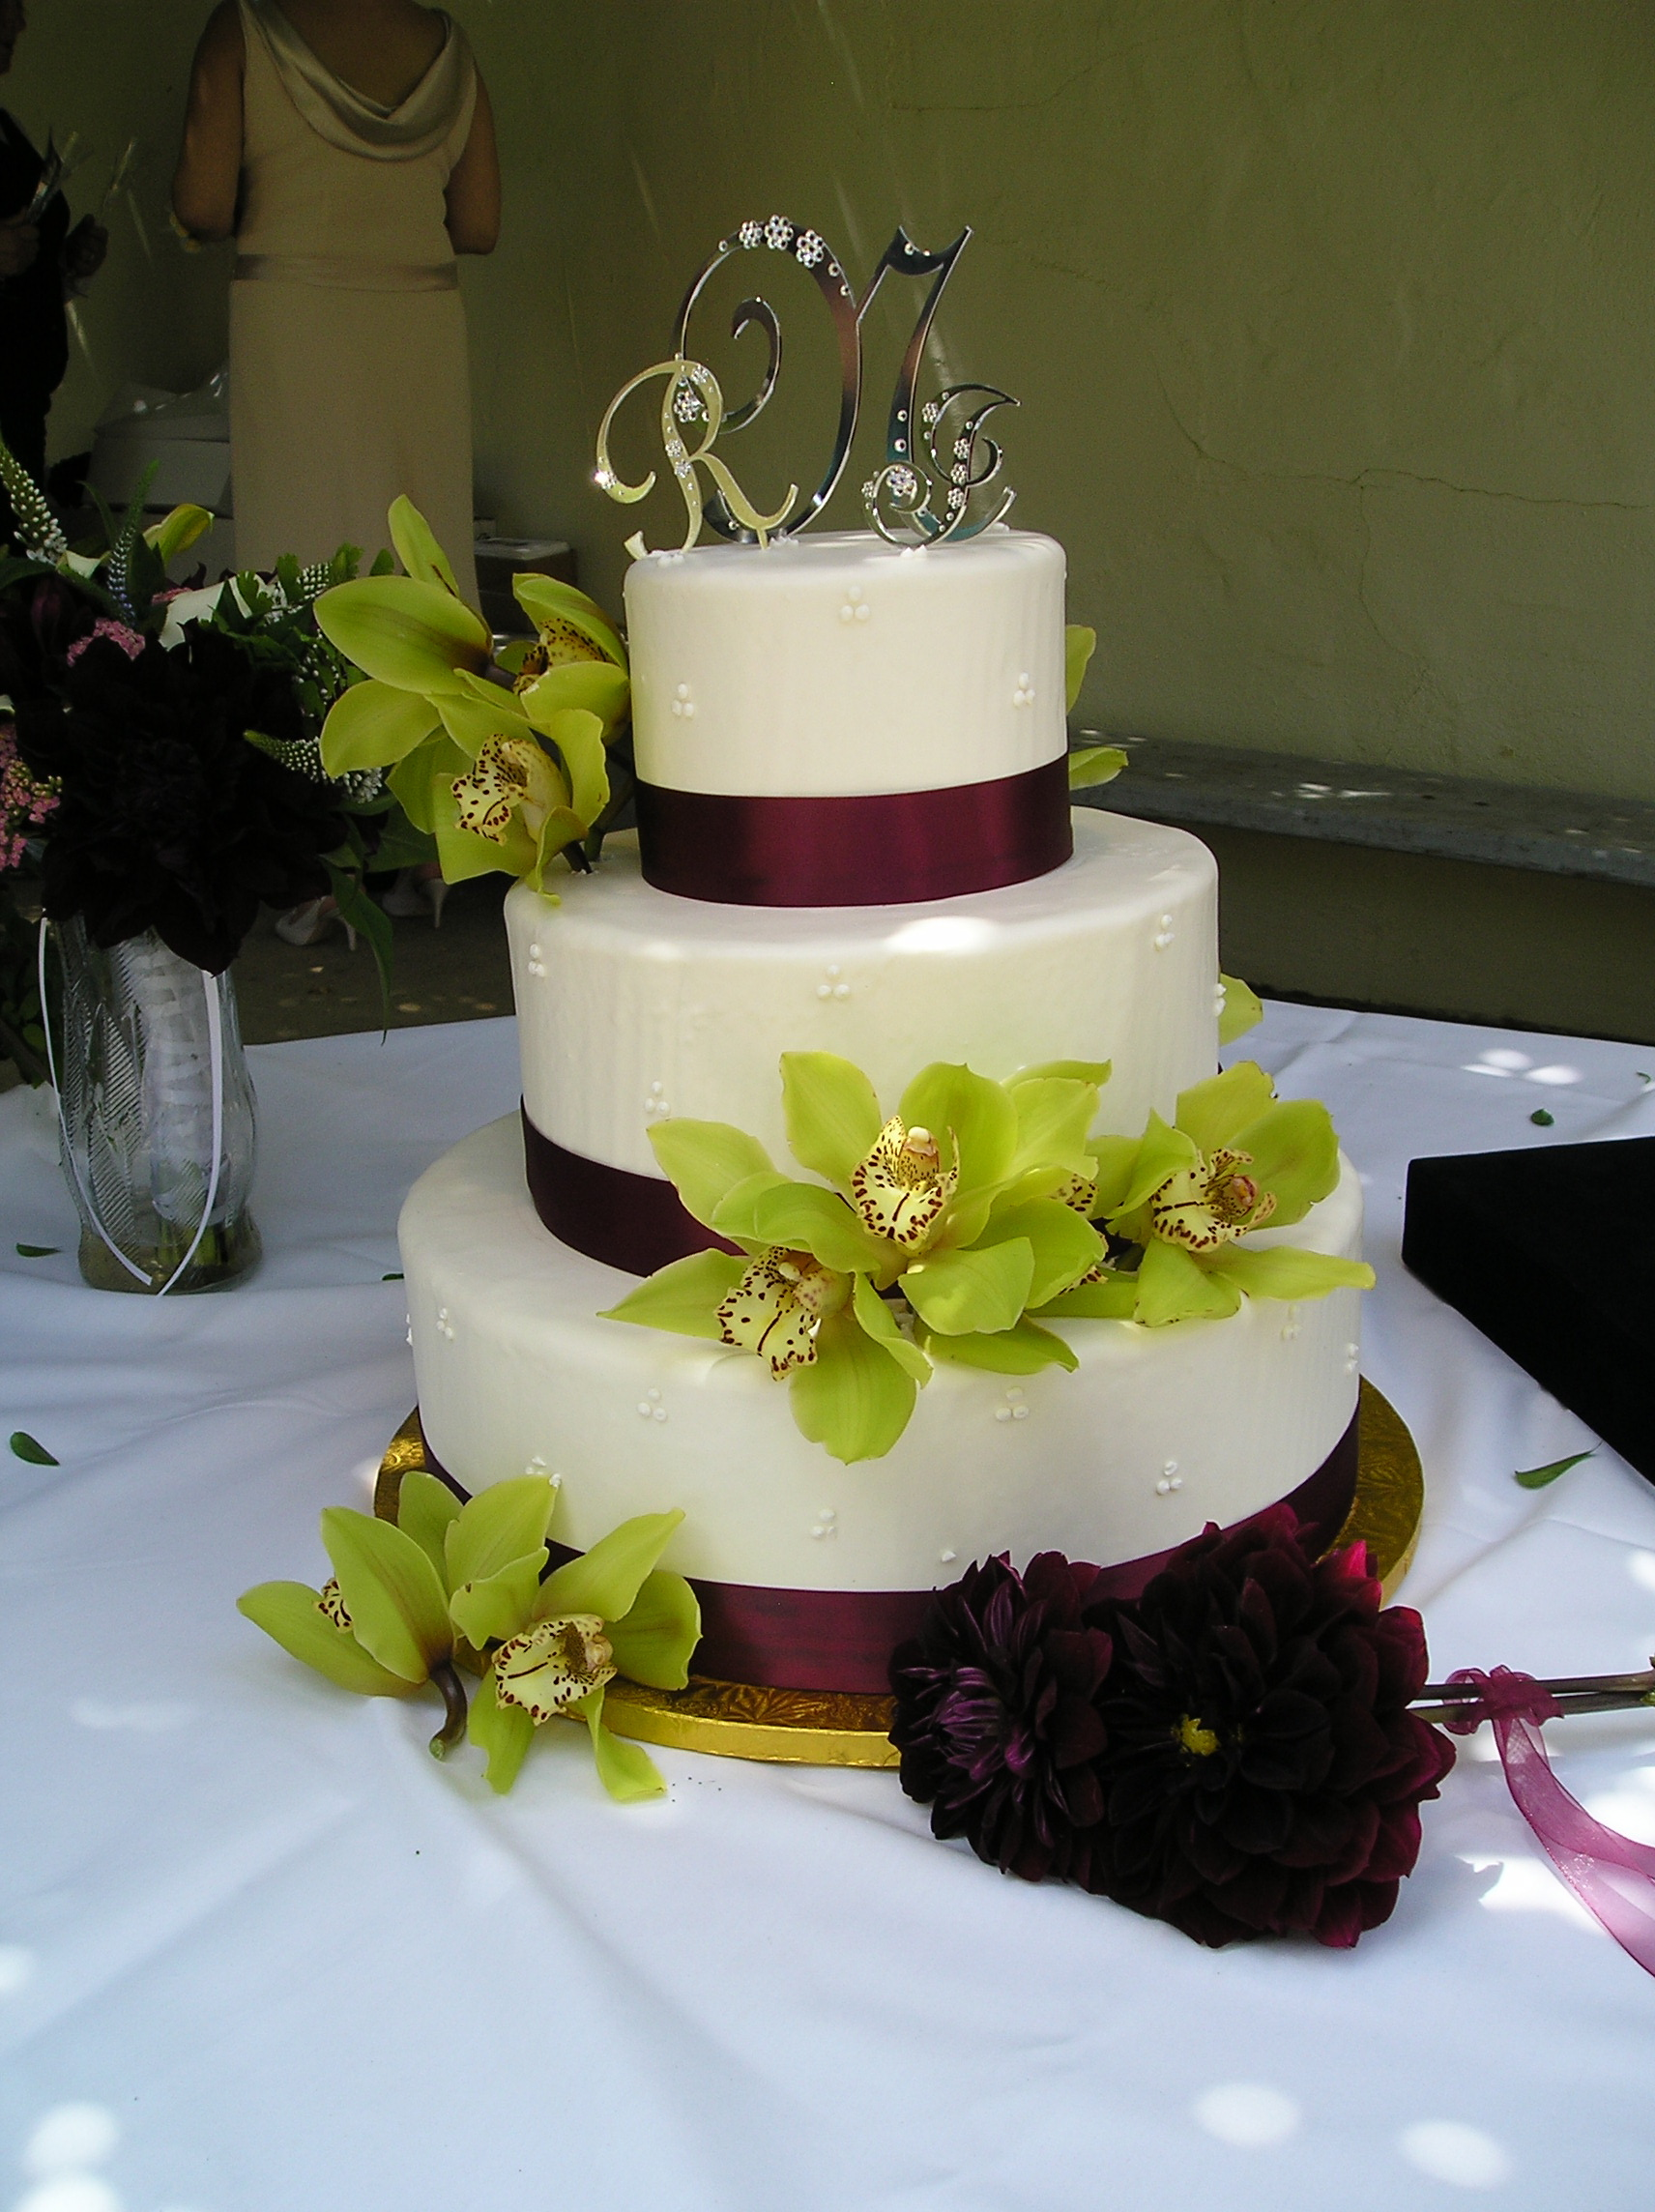 Cake Decoration Wedding : File:Wedding cake with green floral decoration, 2006.jpg